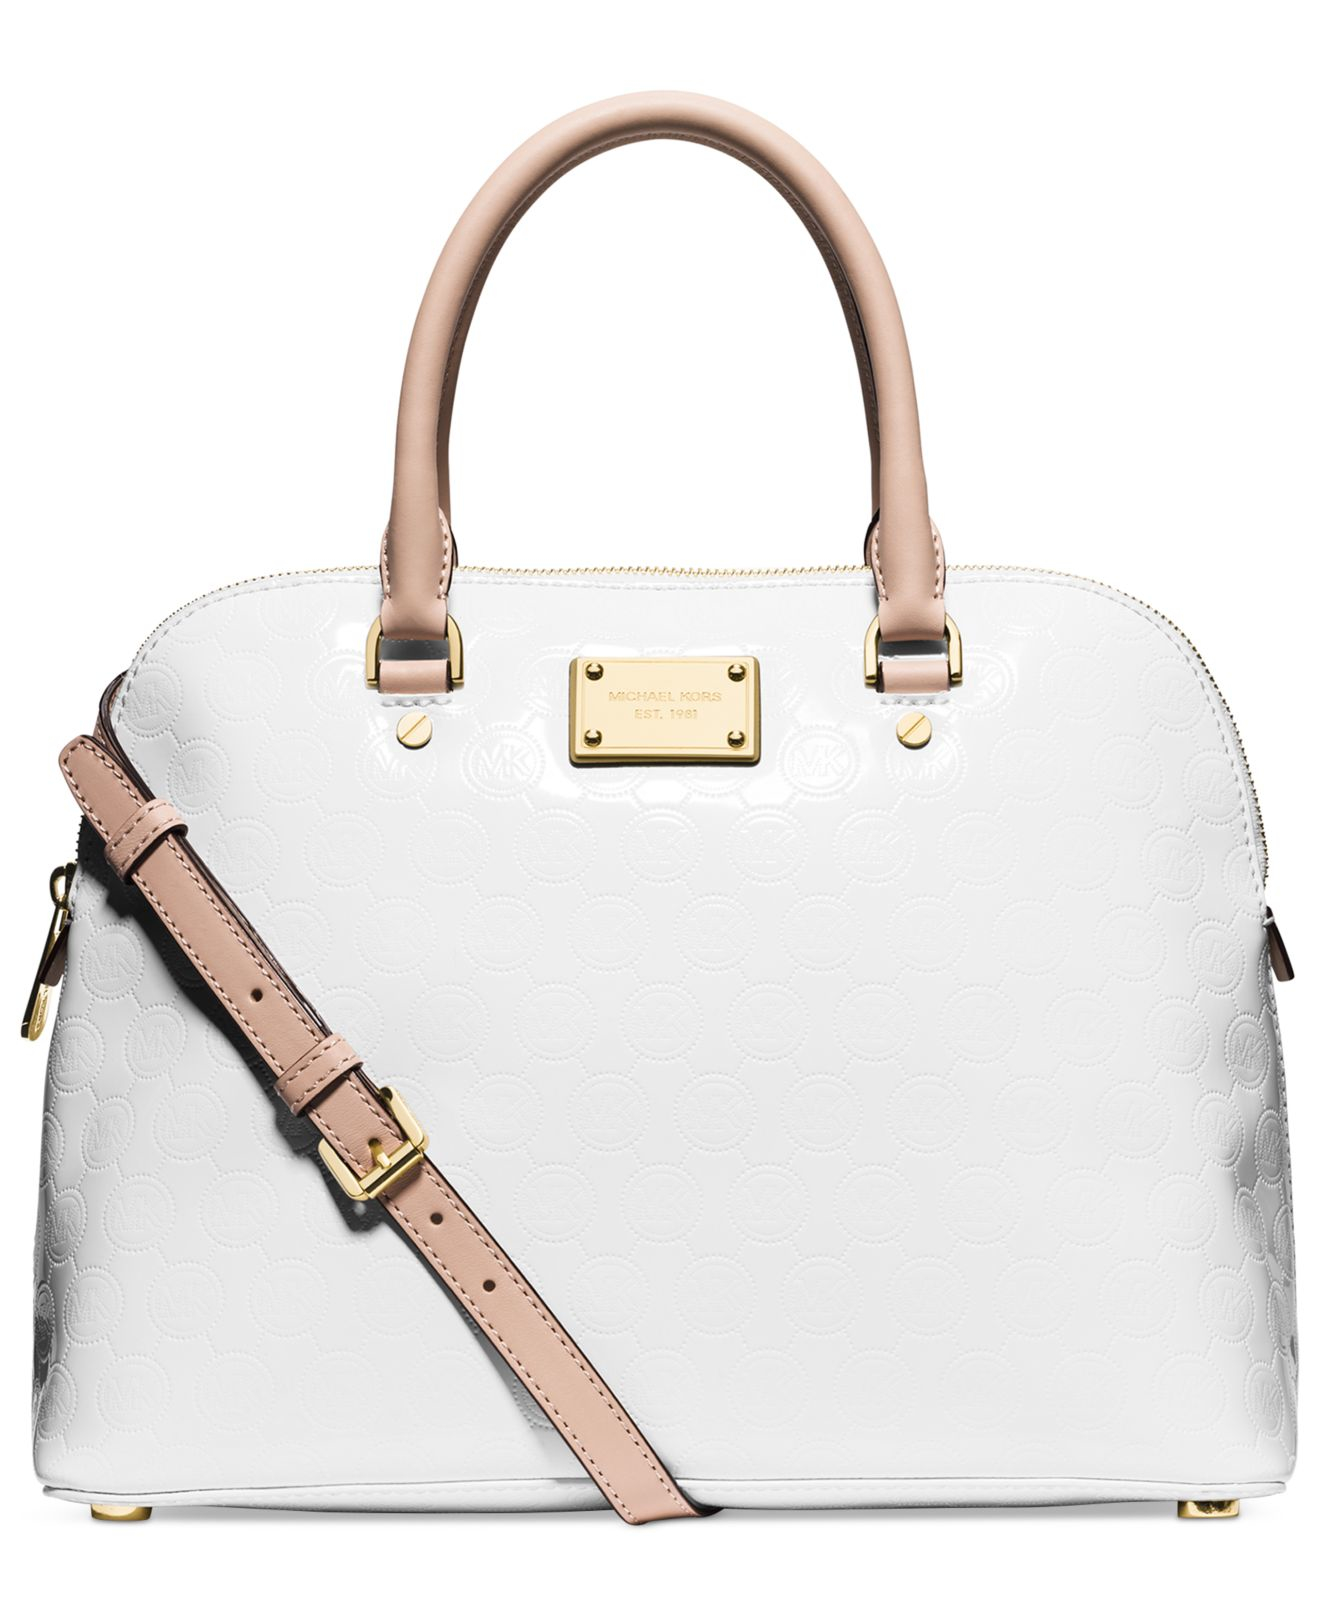 c2e9f76d1bdc ... netherlands lyst michael kors michael cindy medium dome satchel in  natural 258d5 5cc65